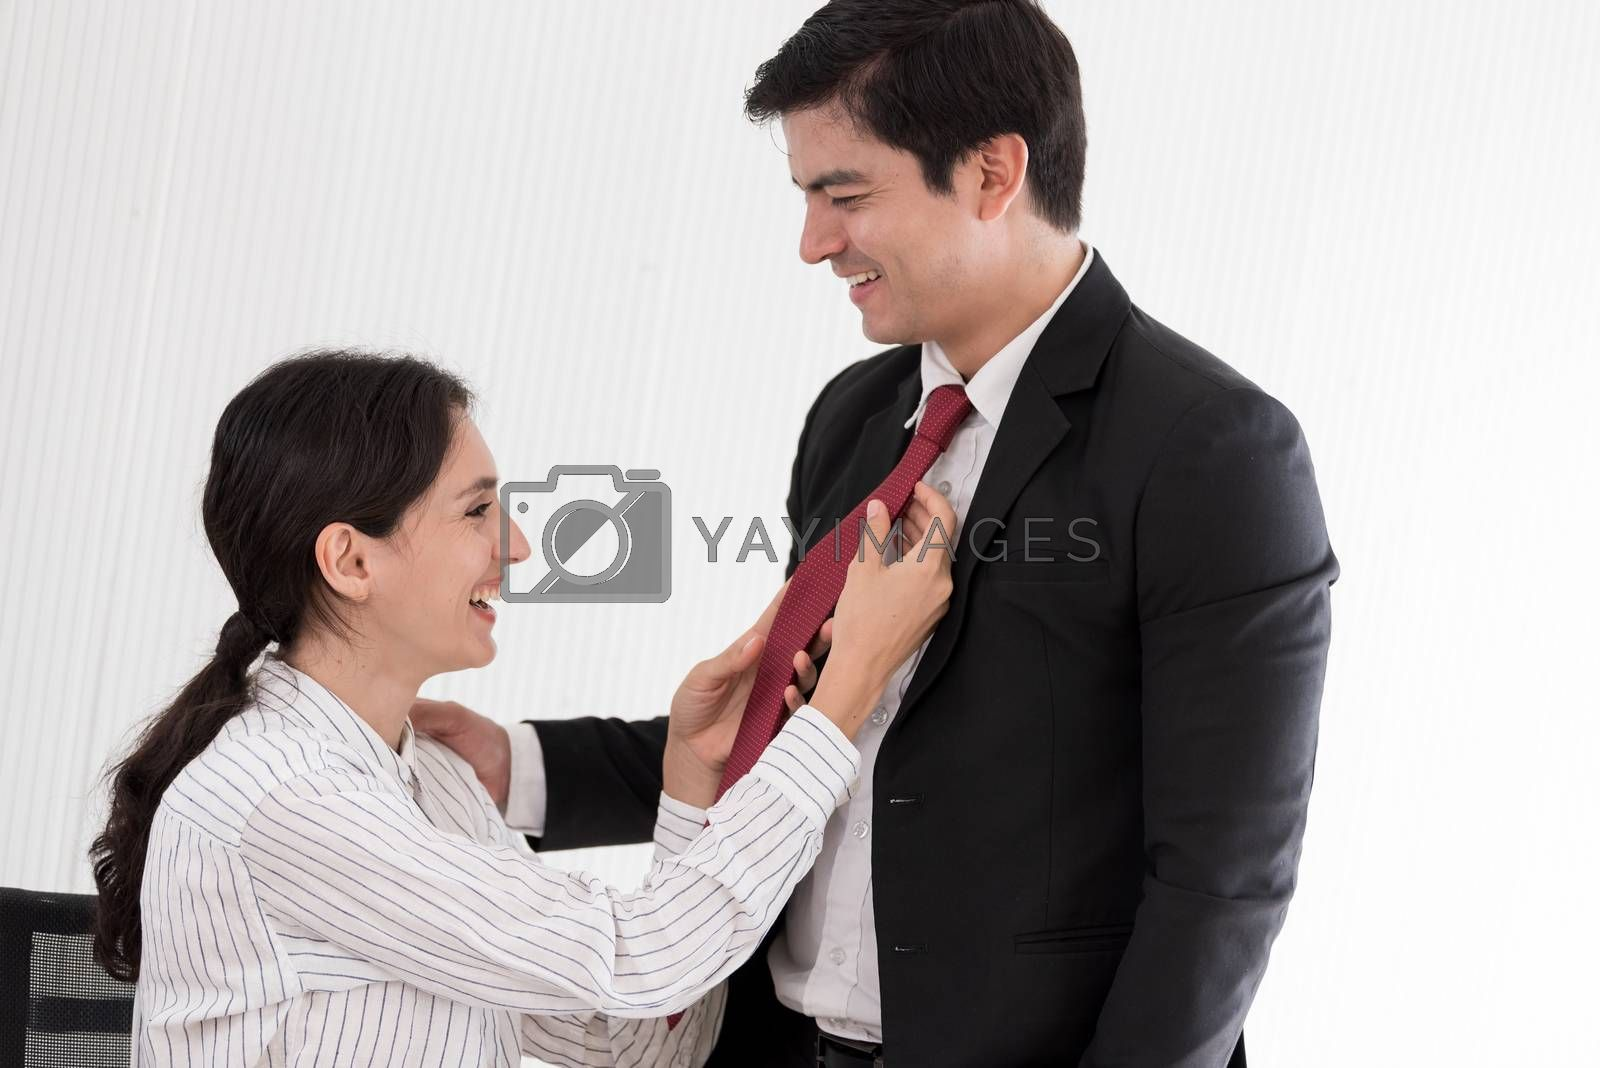 Wife tying red necktie to her husband in the office with smiling and happy.